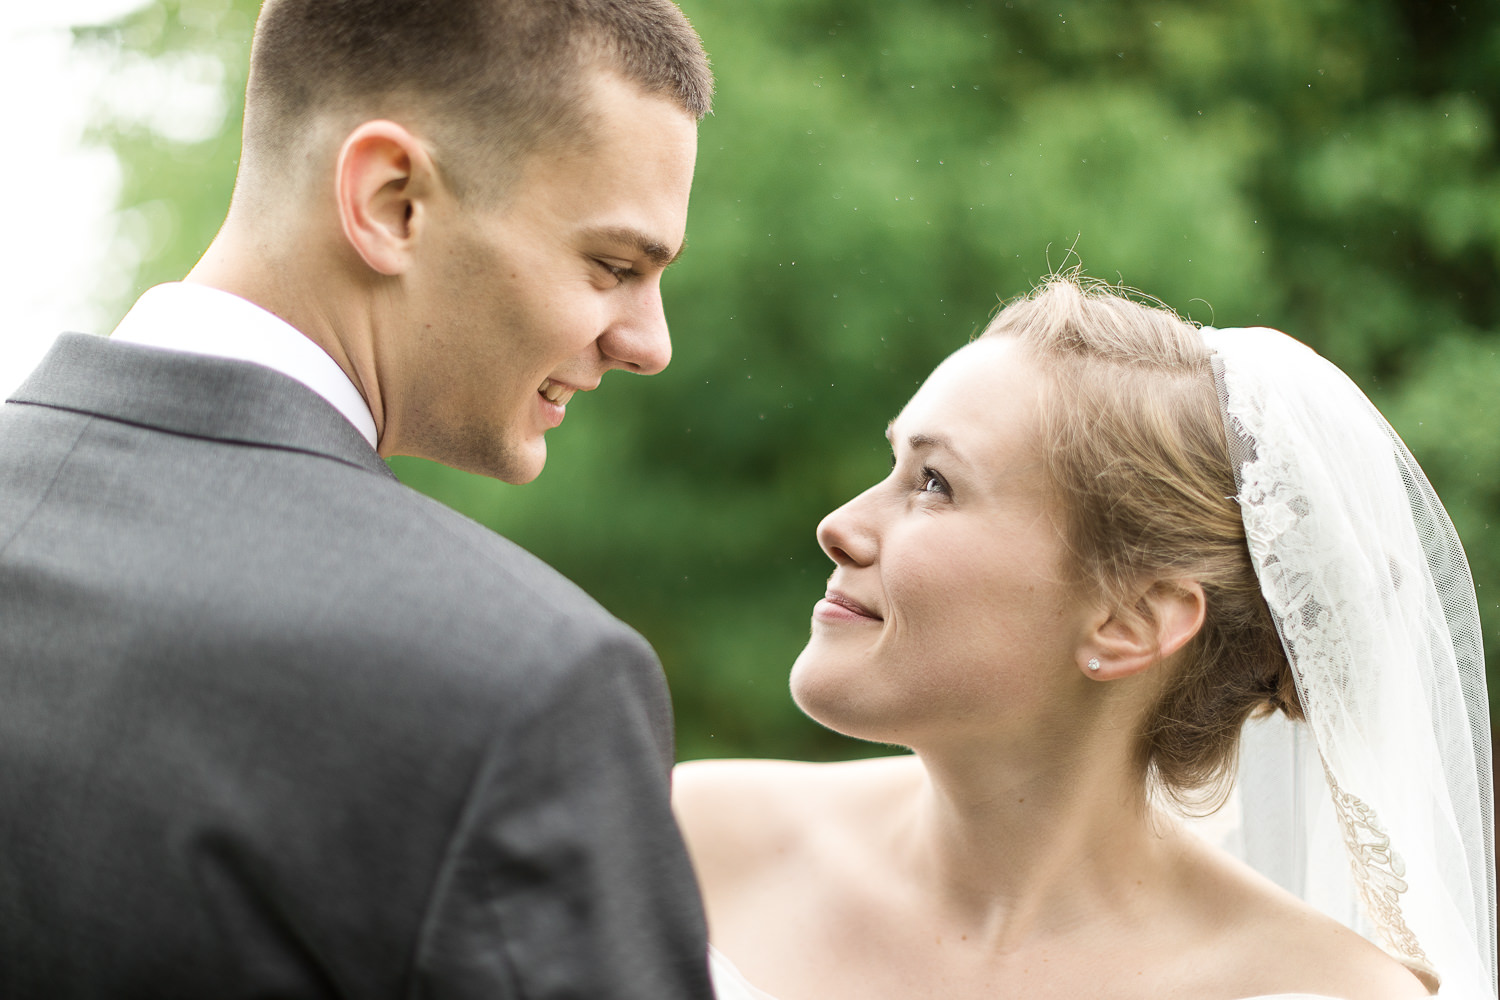 A bride and groom look into each others eyes during their wedding day portrait session with Stina Booth Photographer at Jay Peak Resort